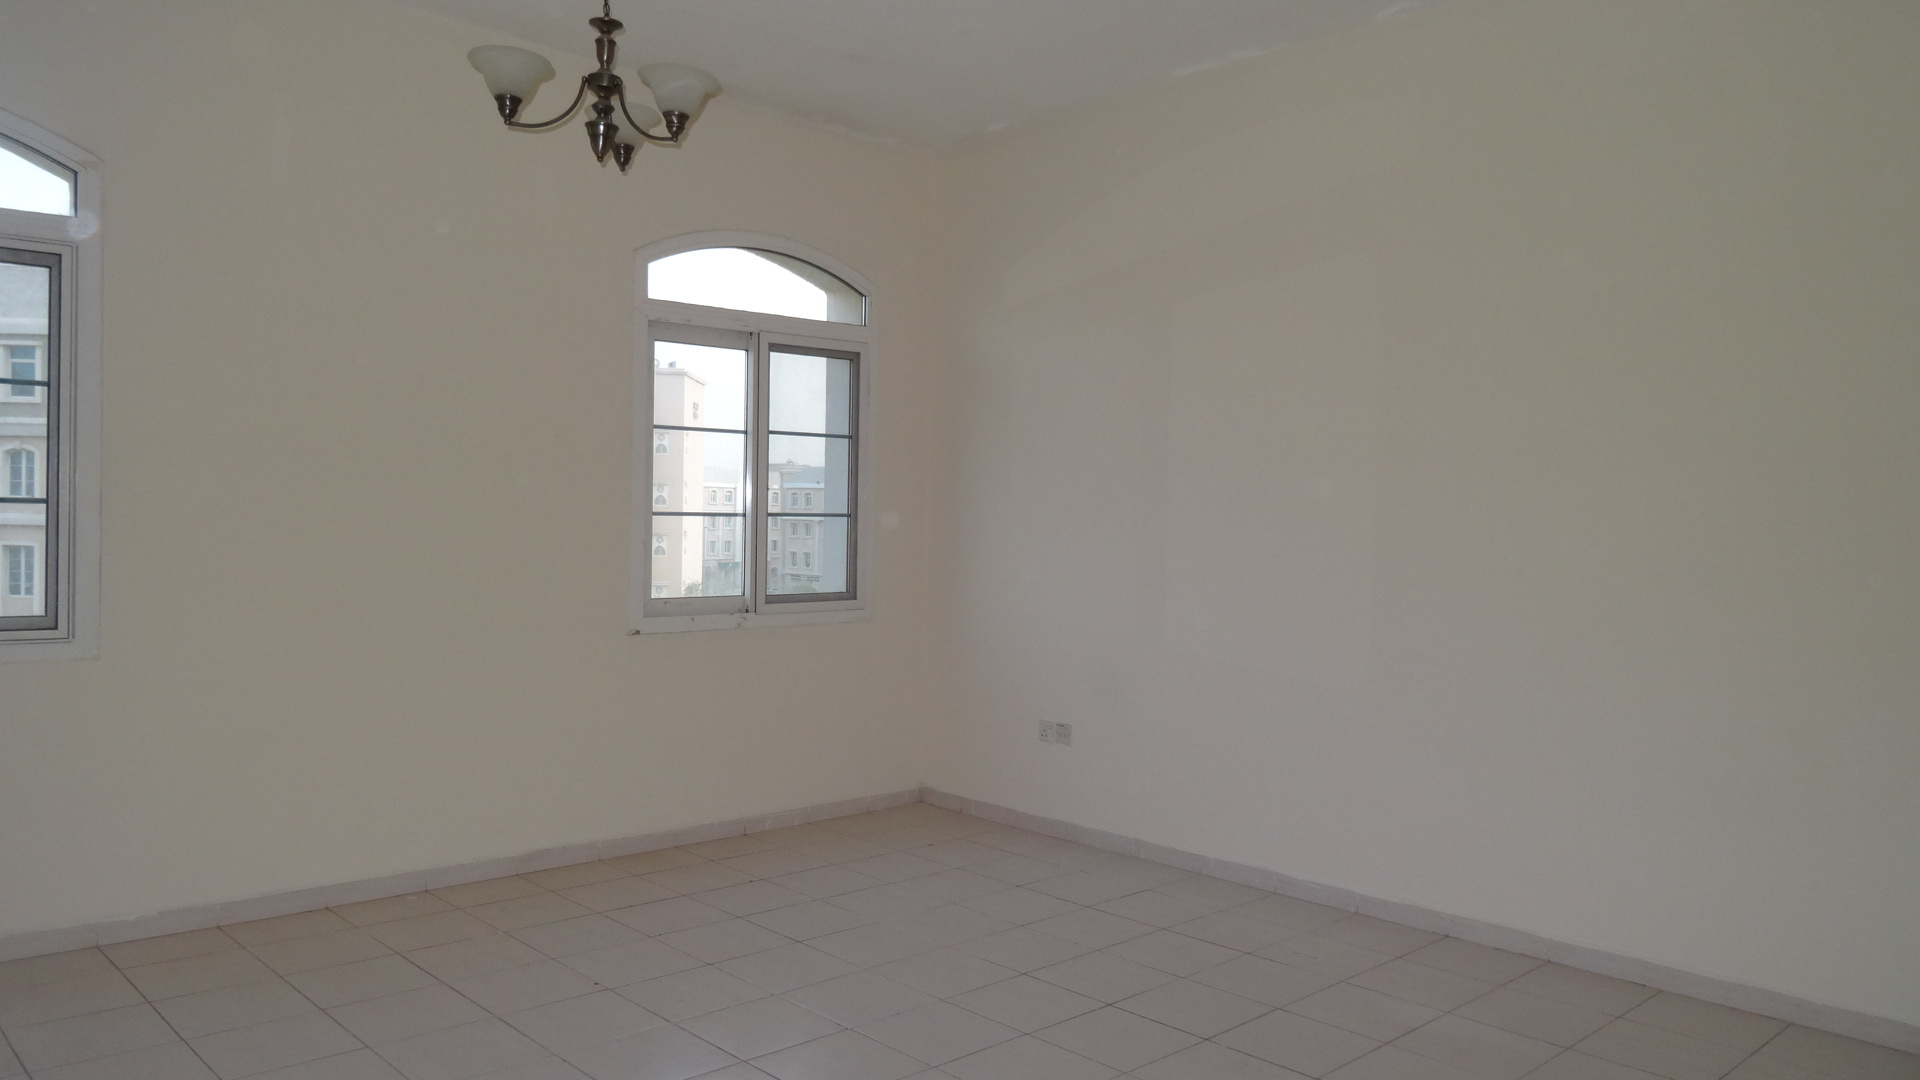 1 bedroom apartment for rent in France cluster P-23 Building